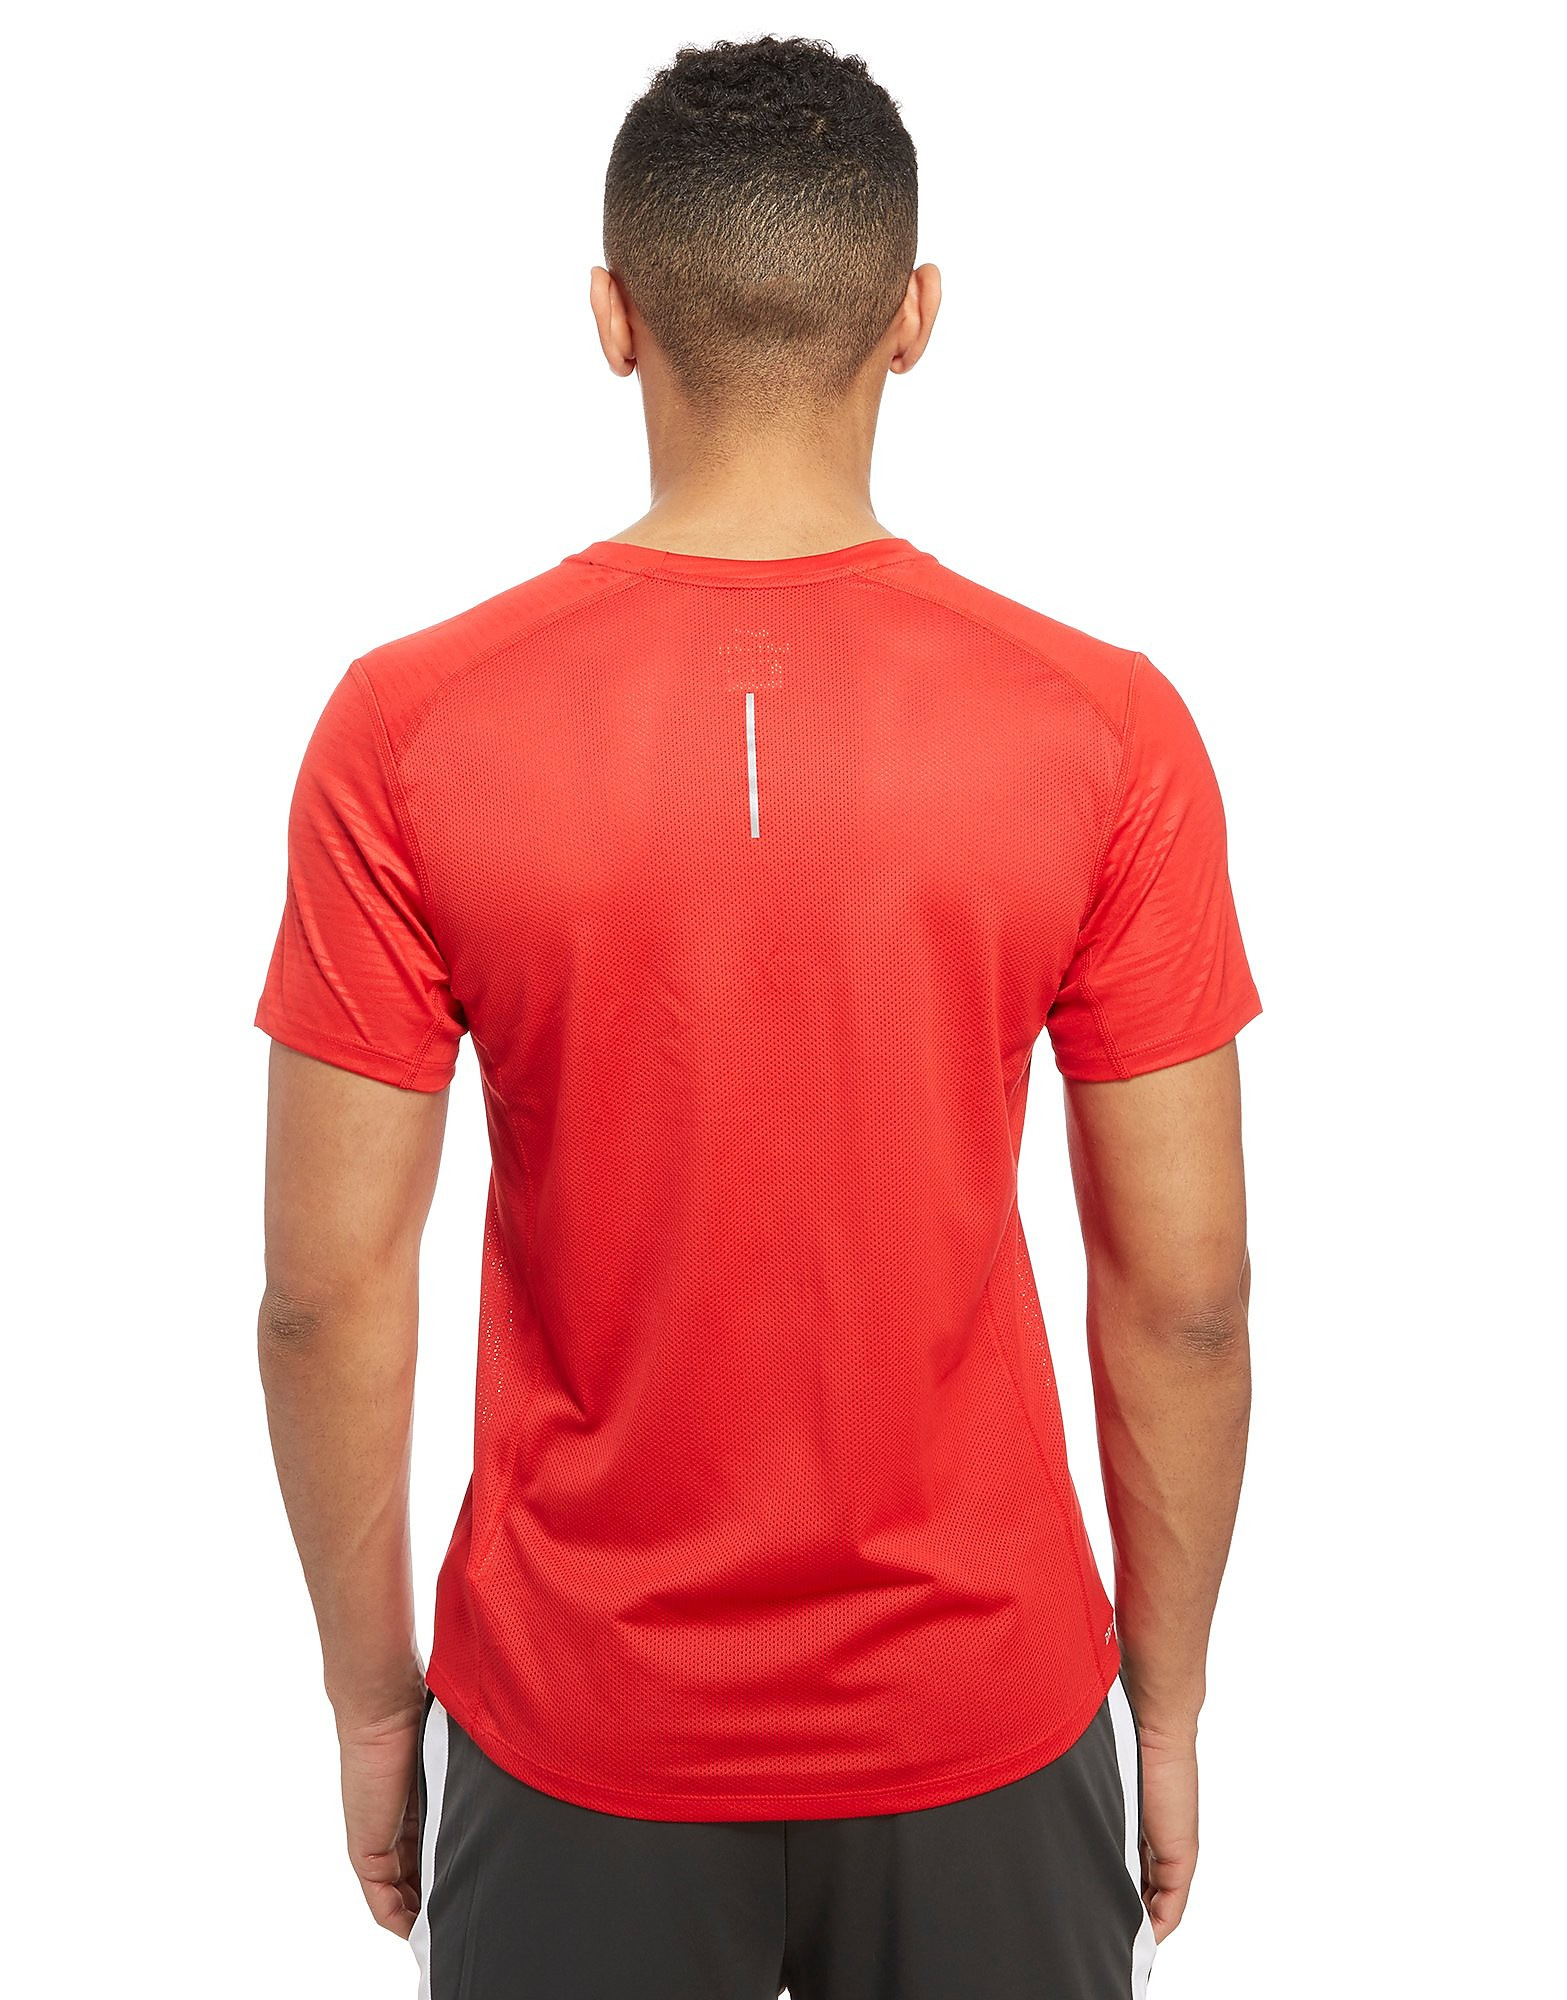 Nike Dry Miler Performance T-Shirt